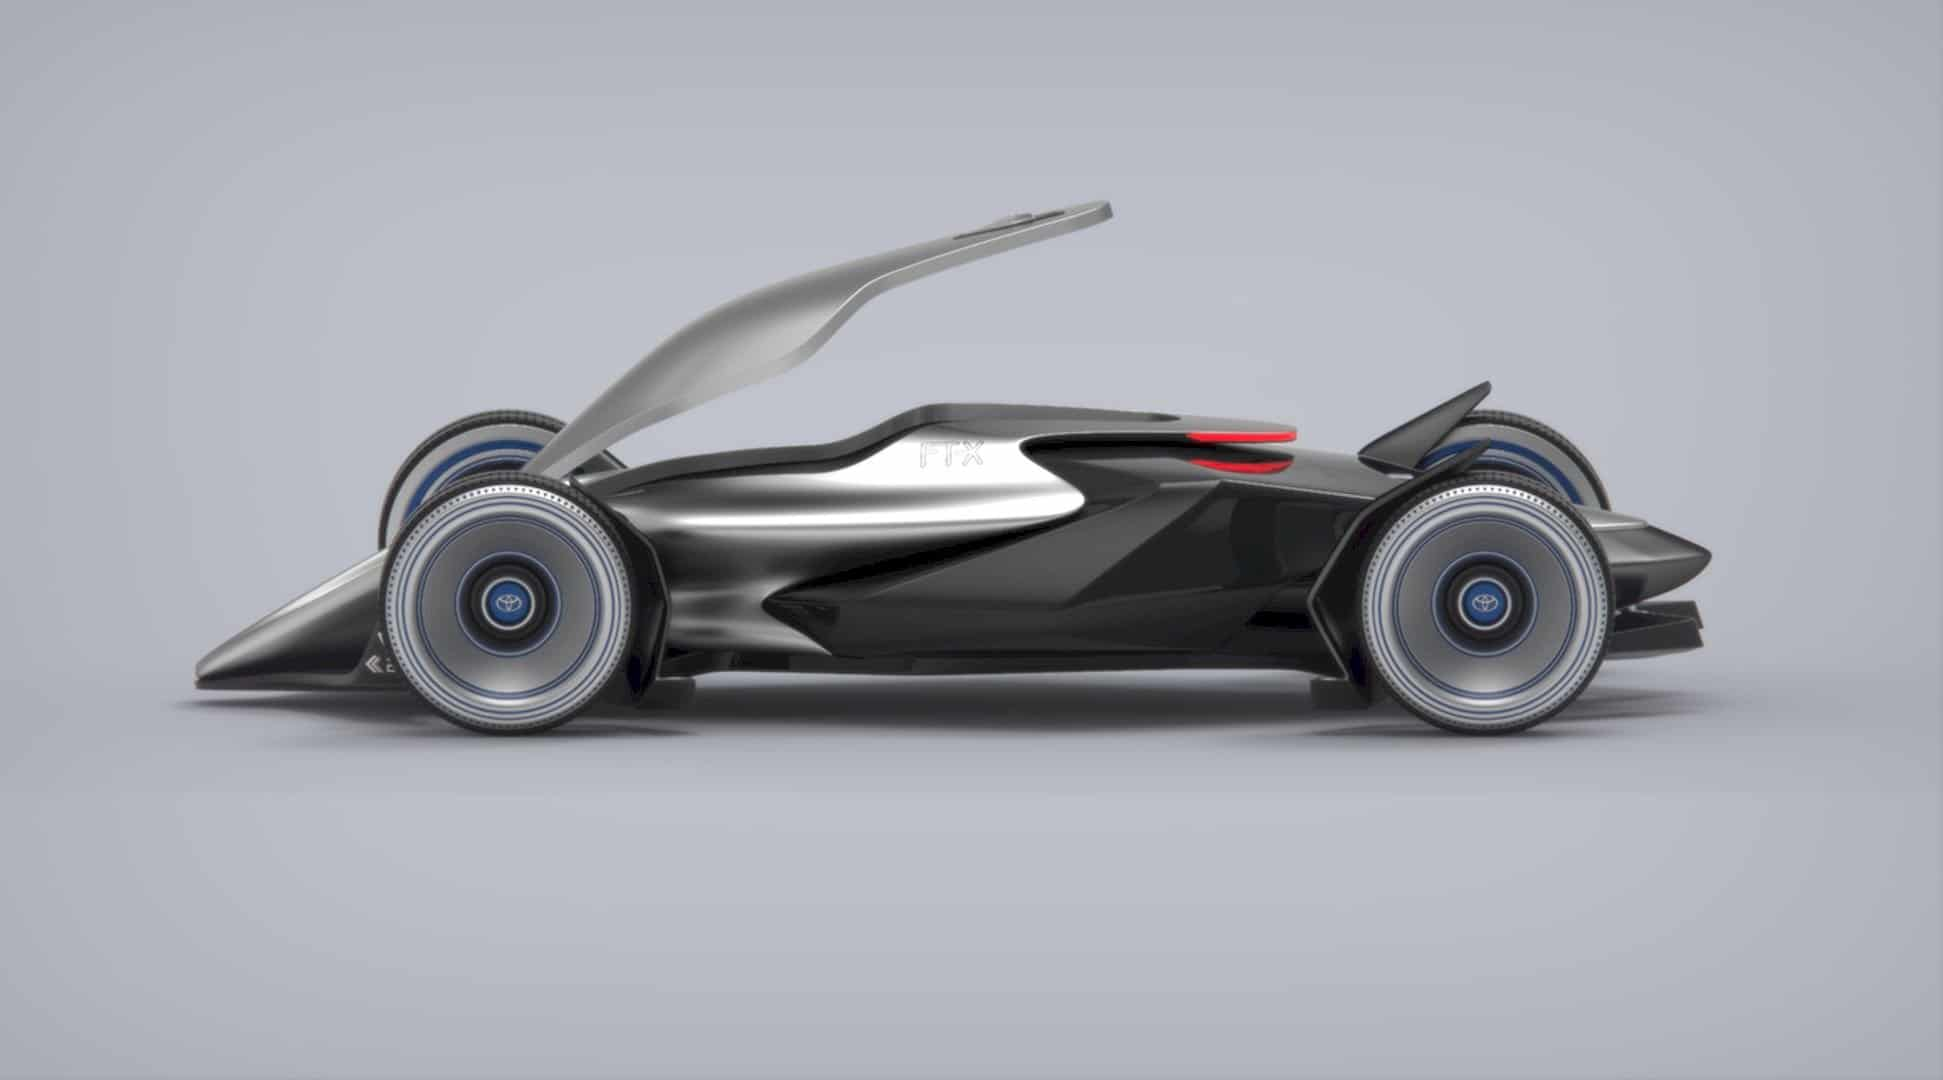 Toyota Car - FT-X Race Car: A Conceptual Design Project of A Futuristic Race Car